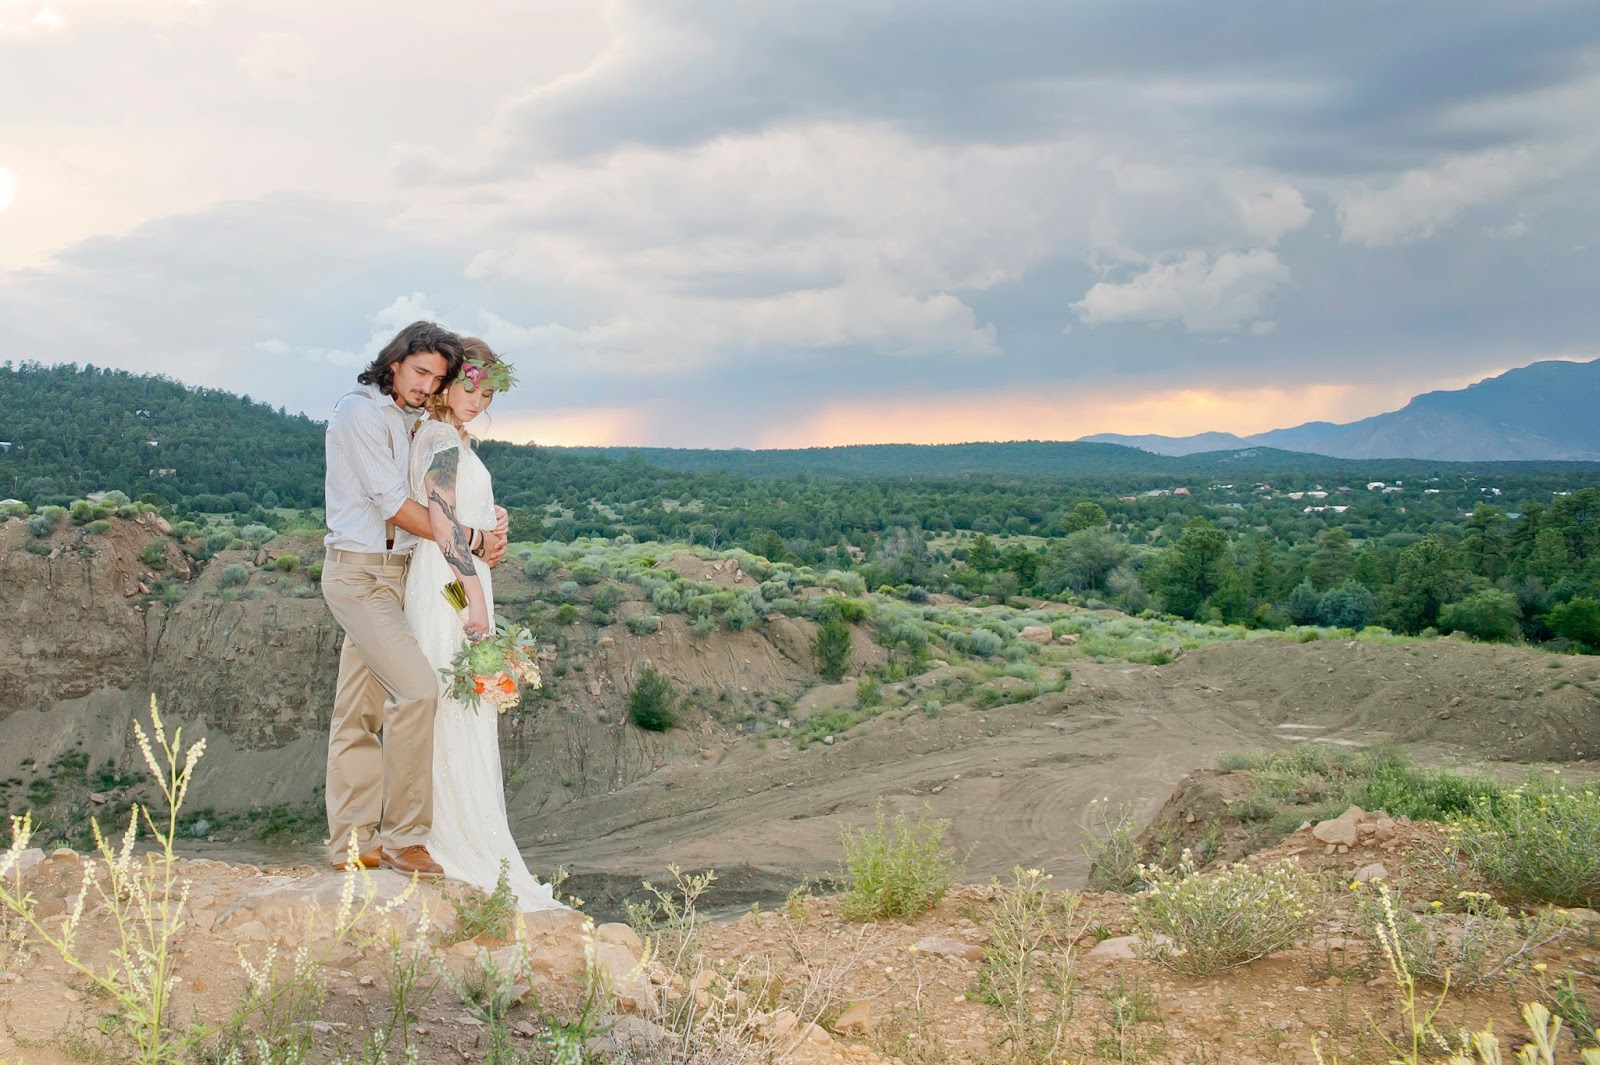 New Mexico Wedding Photographer, New Mexico wedding, Santa fe weddings, santa fe wedding photographers, albuquerque wedding photographers, photographers in albuquerque, boho wedding, new mexico boho wedding, boho stylized photoshoot, hippie weddings, albuquerque weddings, green weddings, albuquerque wedding photography, albuquerque wedding photographer, maura jane photography